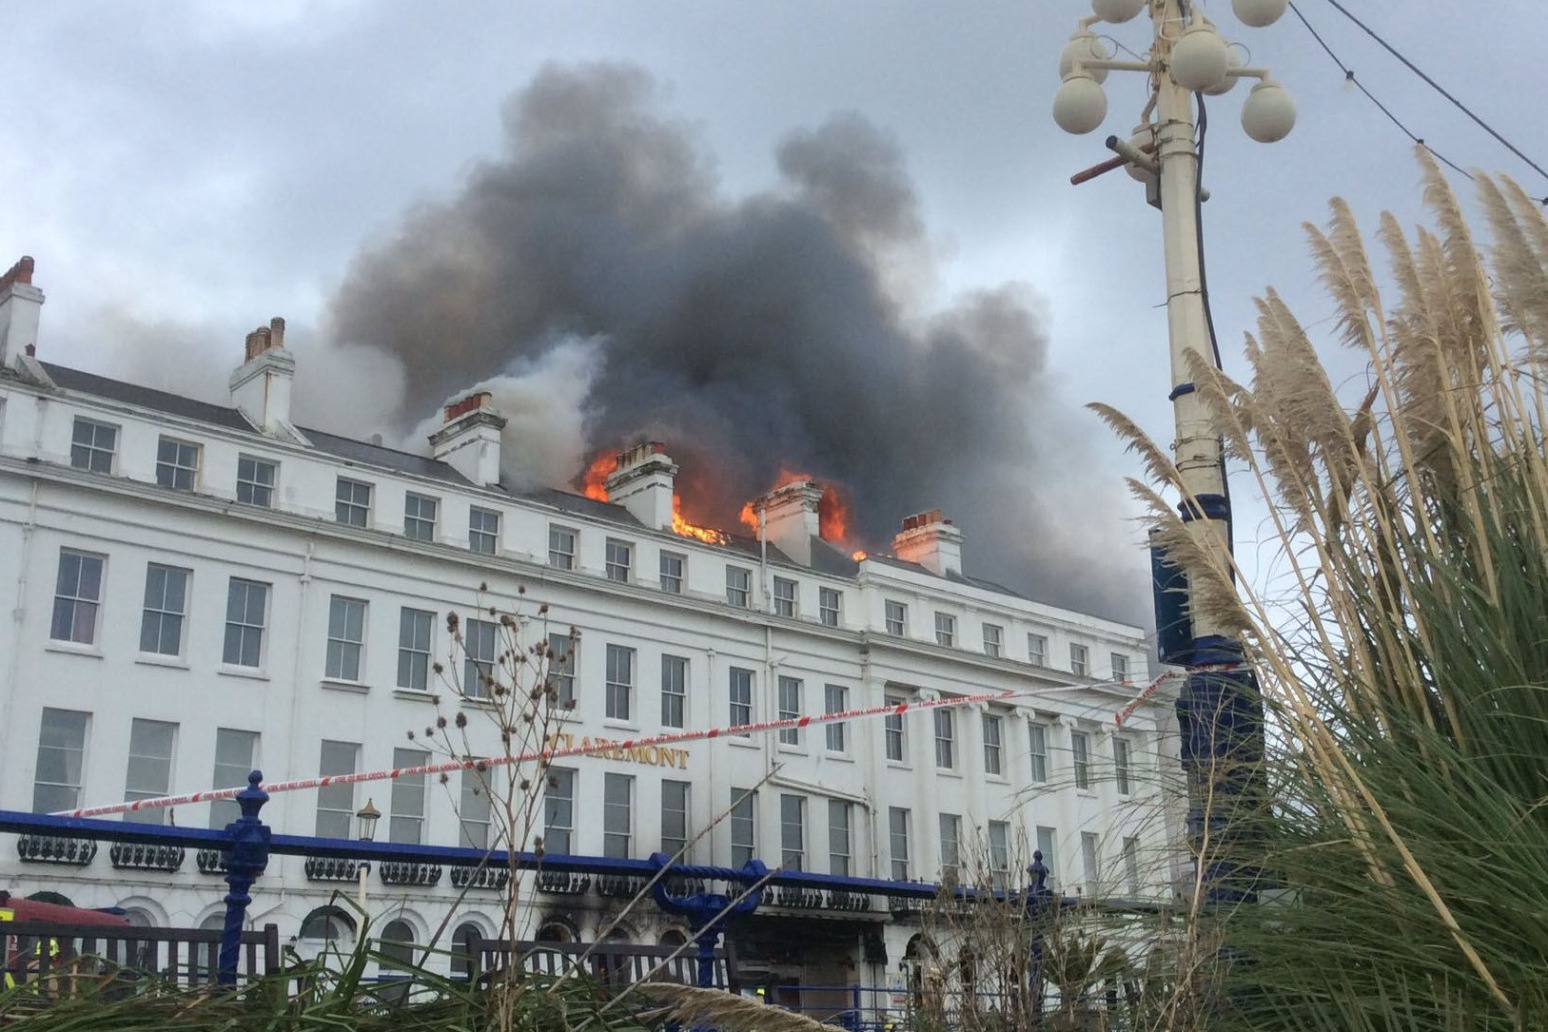 STAFF AT FIRE-HIT SEAFRONT HOTEL PRAISED AFTER EVACUATION